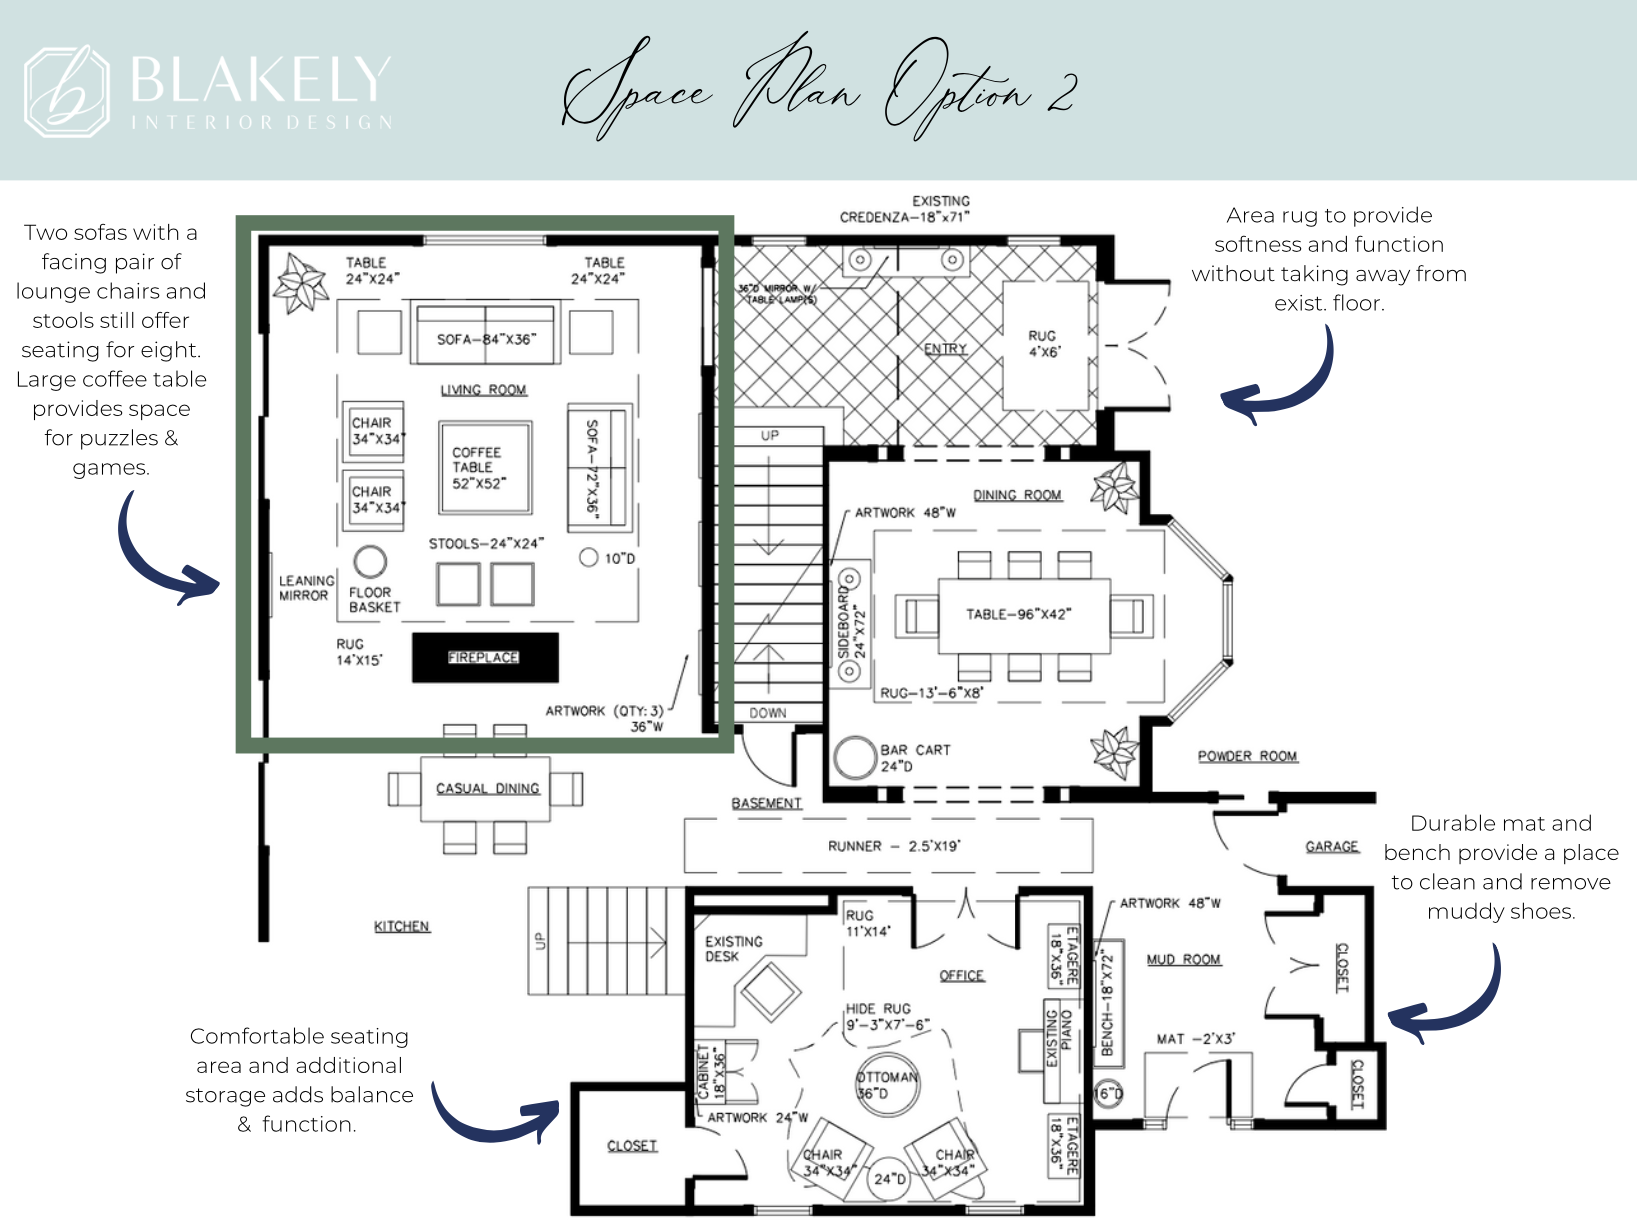 blakely interior design newport new england traditional design in east greenwich floor plan layout of crystal creek space